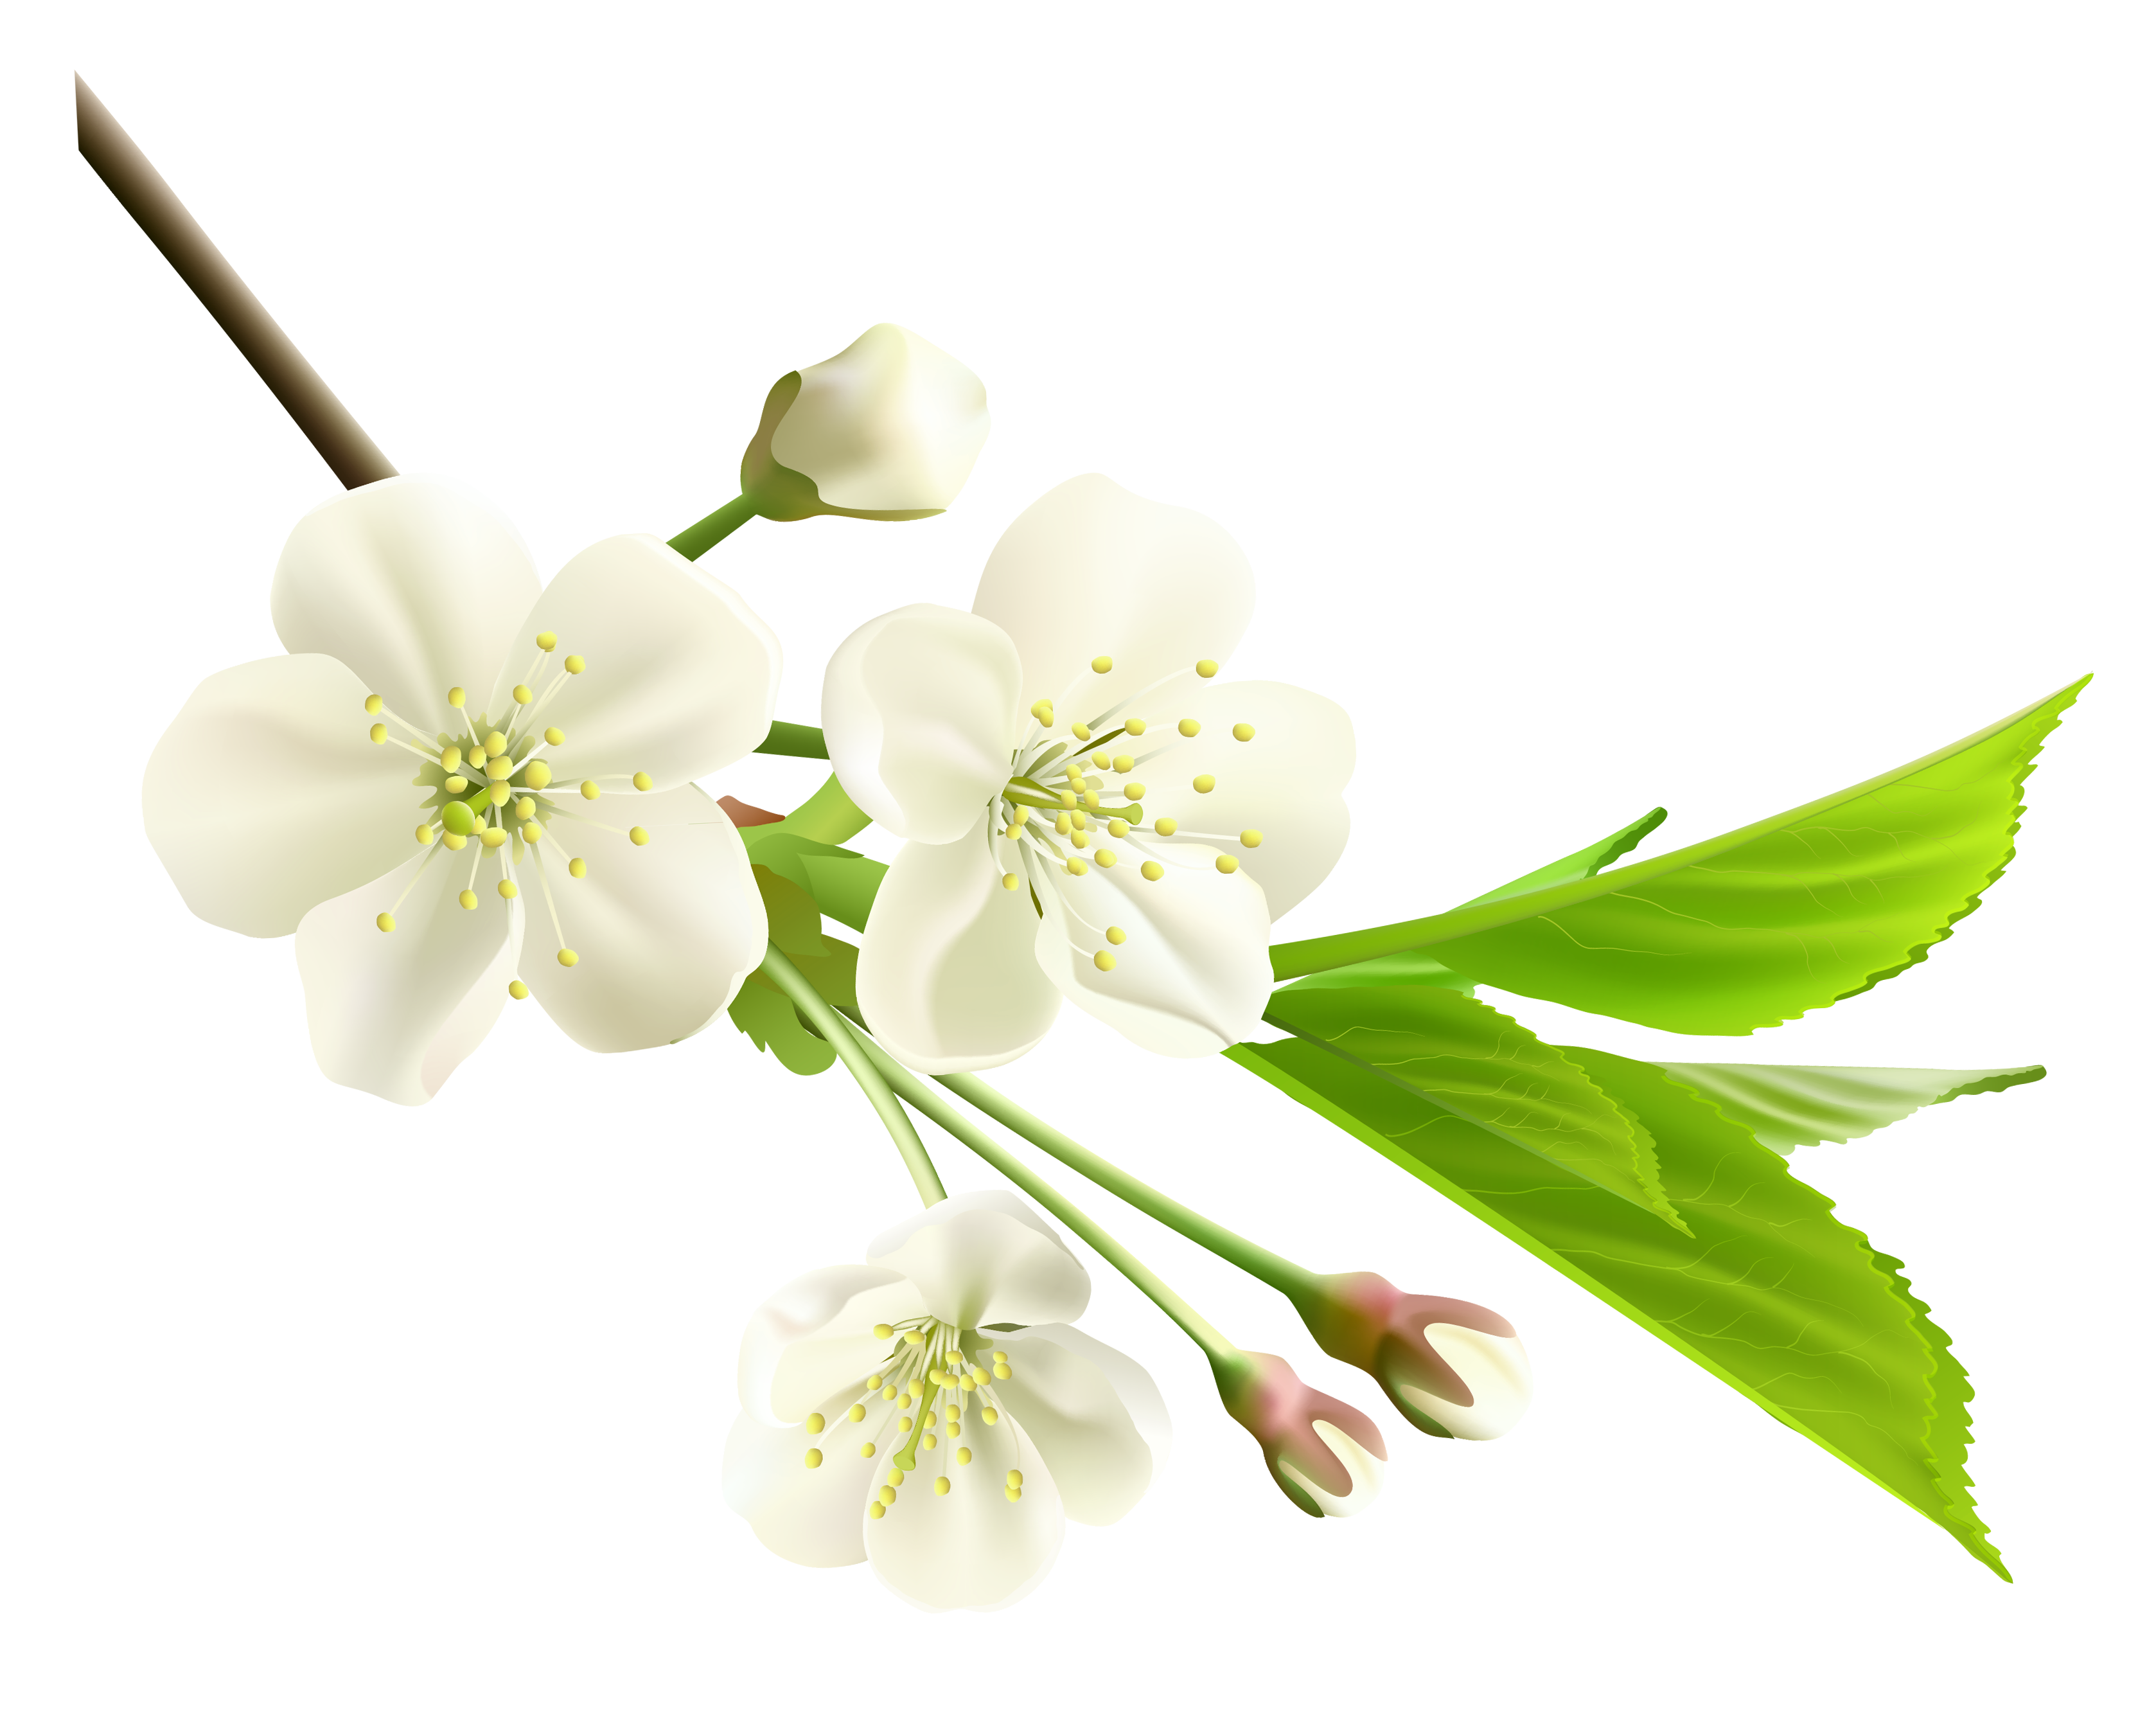 Spring branch clipart #10